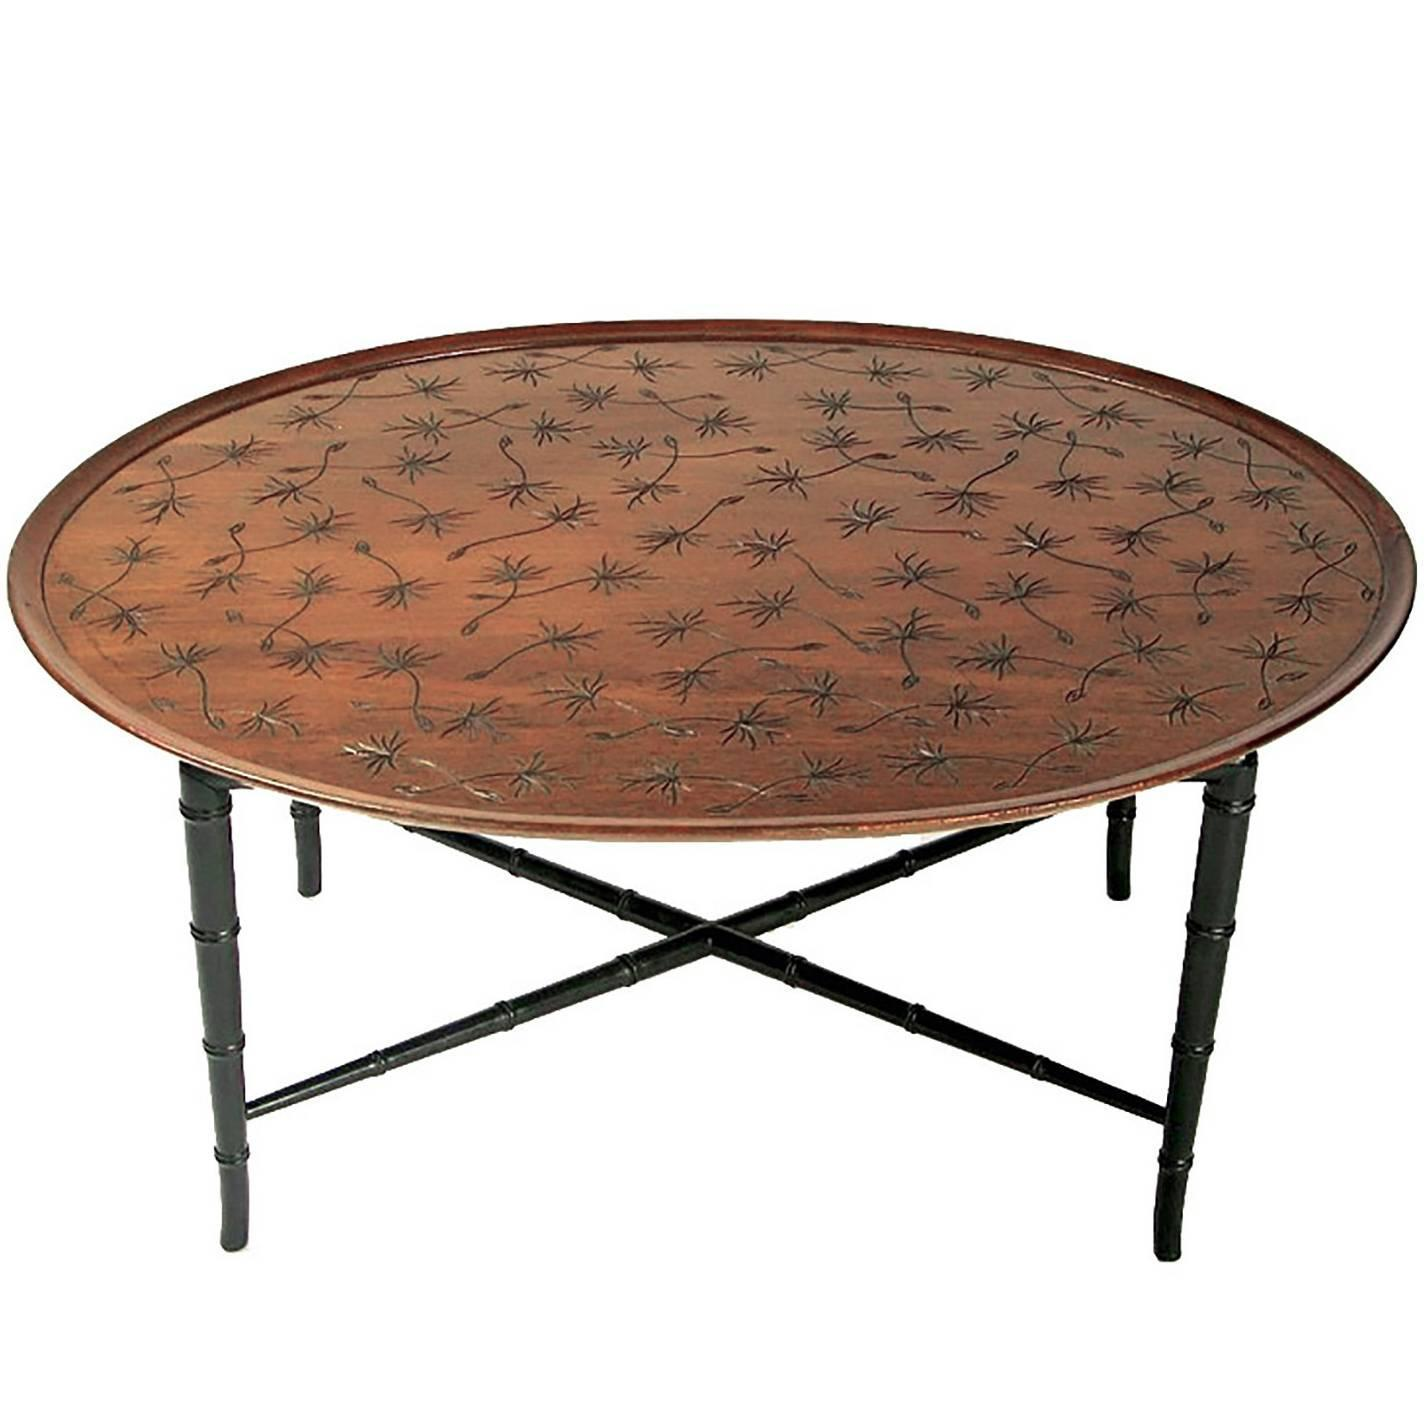 Kittinger Tray Coffee Table with Incised Thistledown Design For